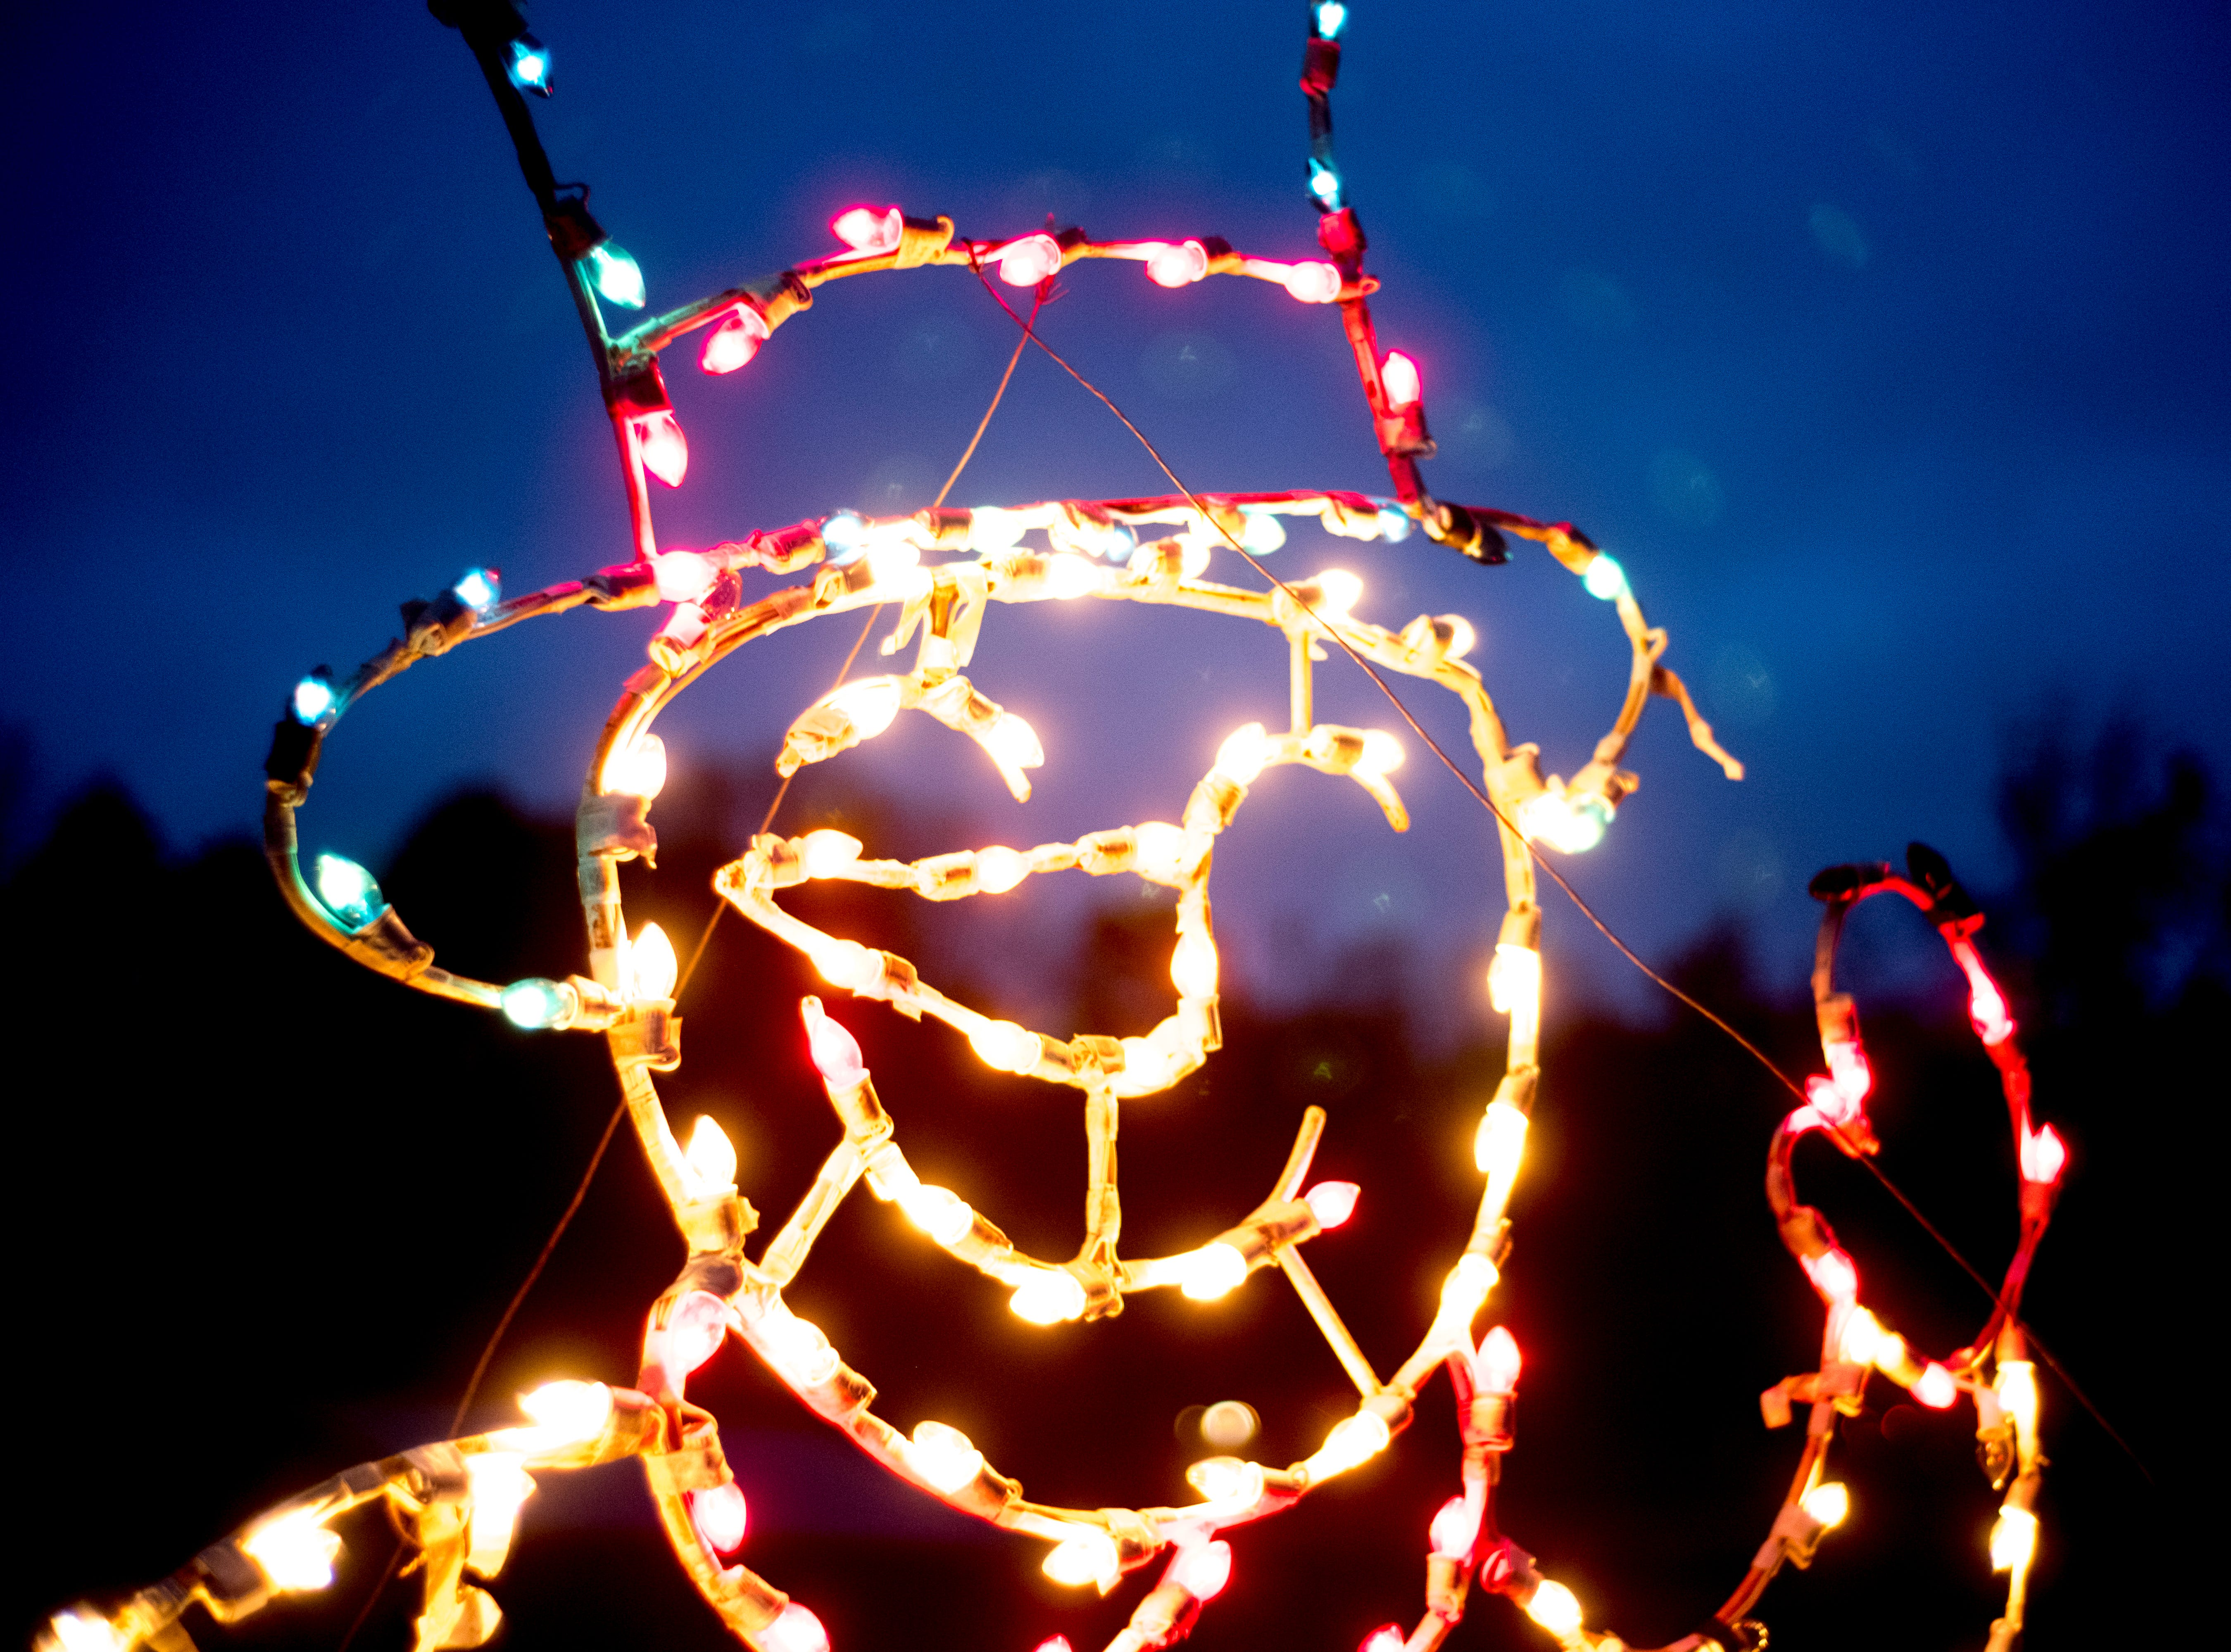 A snowman light at Knox CountyÕs 20th annual Holiday Festival of Lights kick off at The Cove at Concord Park in Farragut, Tennessee on Friday, December 21, 2018. The family-friendly event is free and will run through Dec. 29 from 6 to 9 p.m., excluding Christmas Eve and Christmas Day.